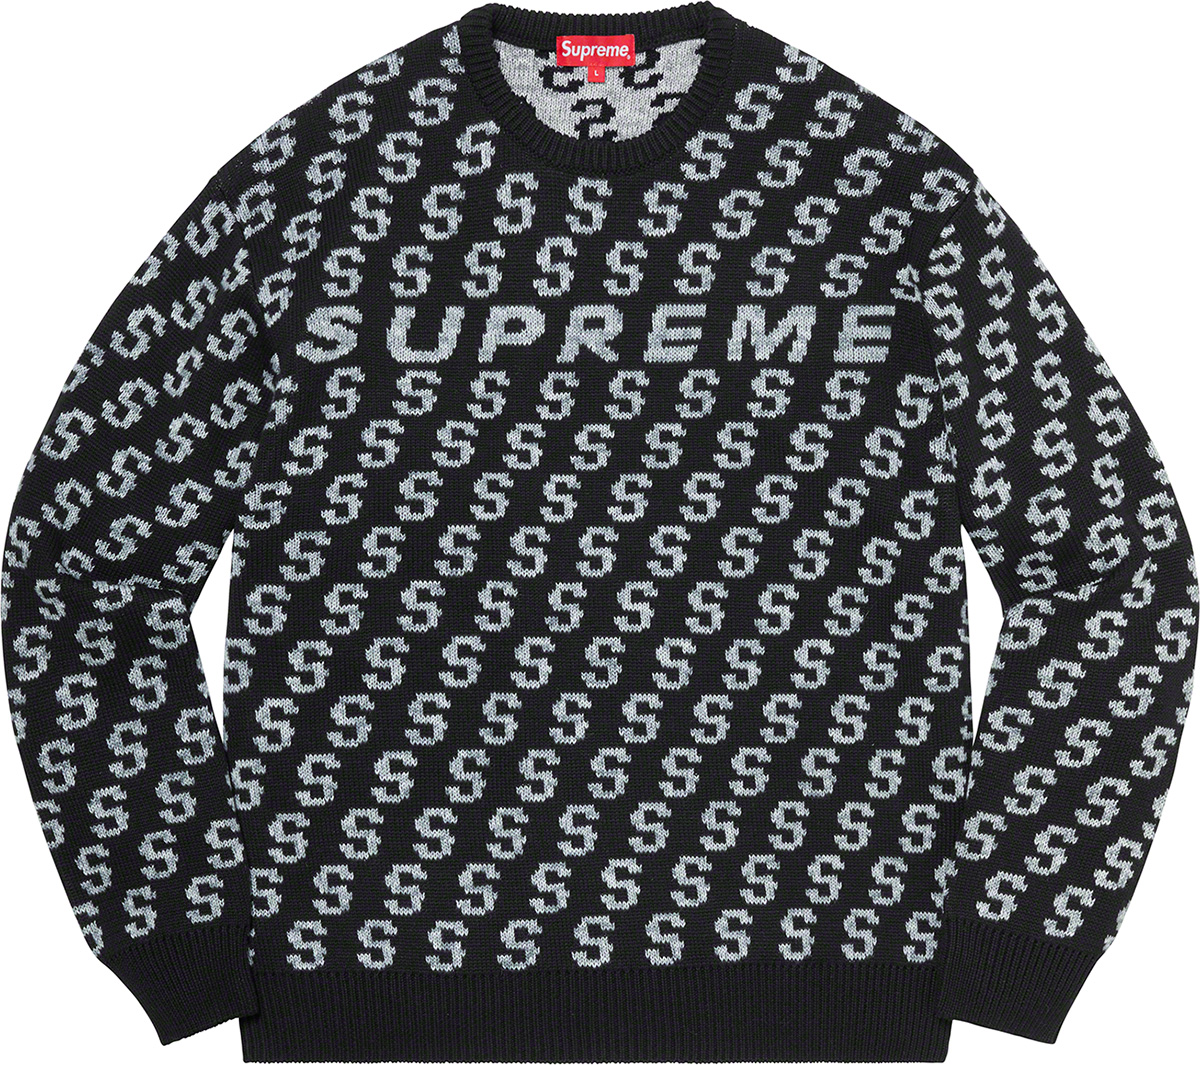 supreme-21ss-spring-summer-s-repeat-sweater